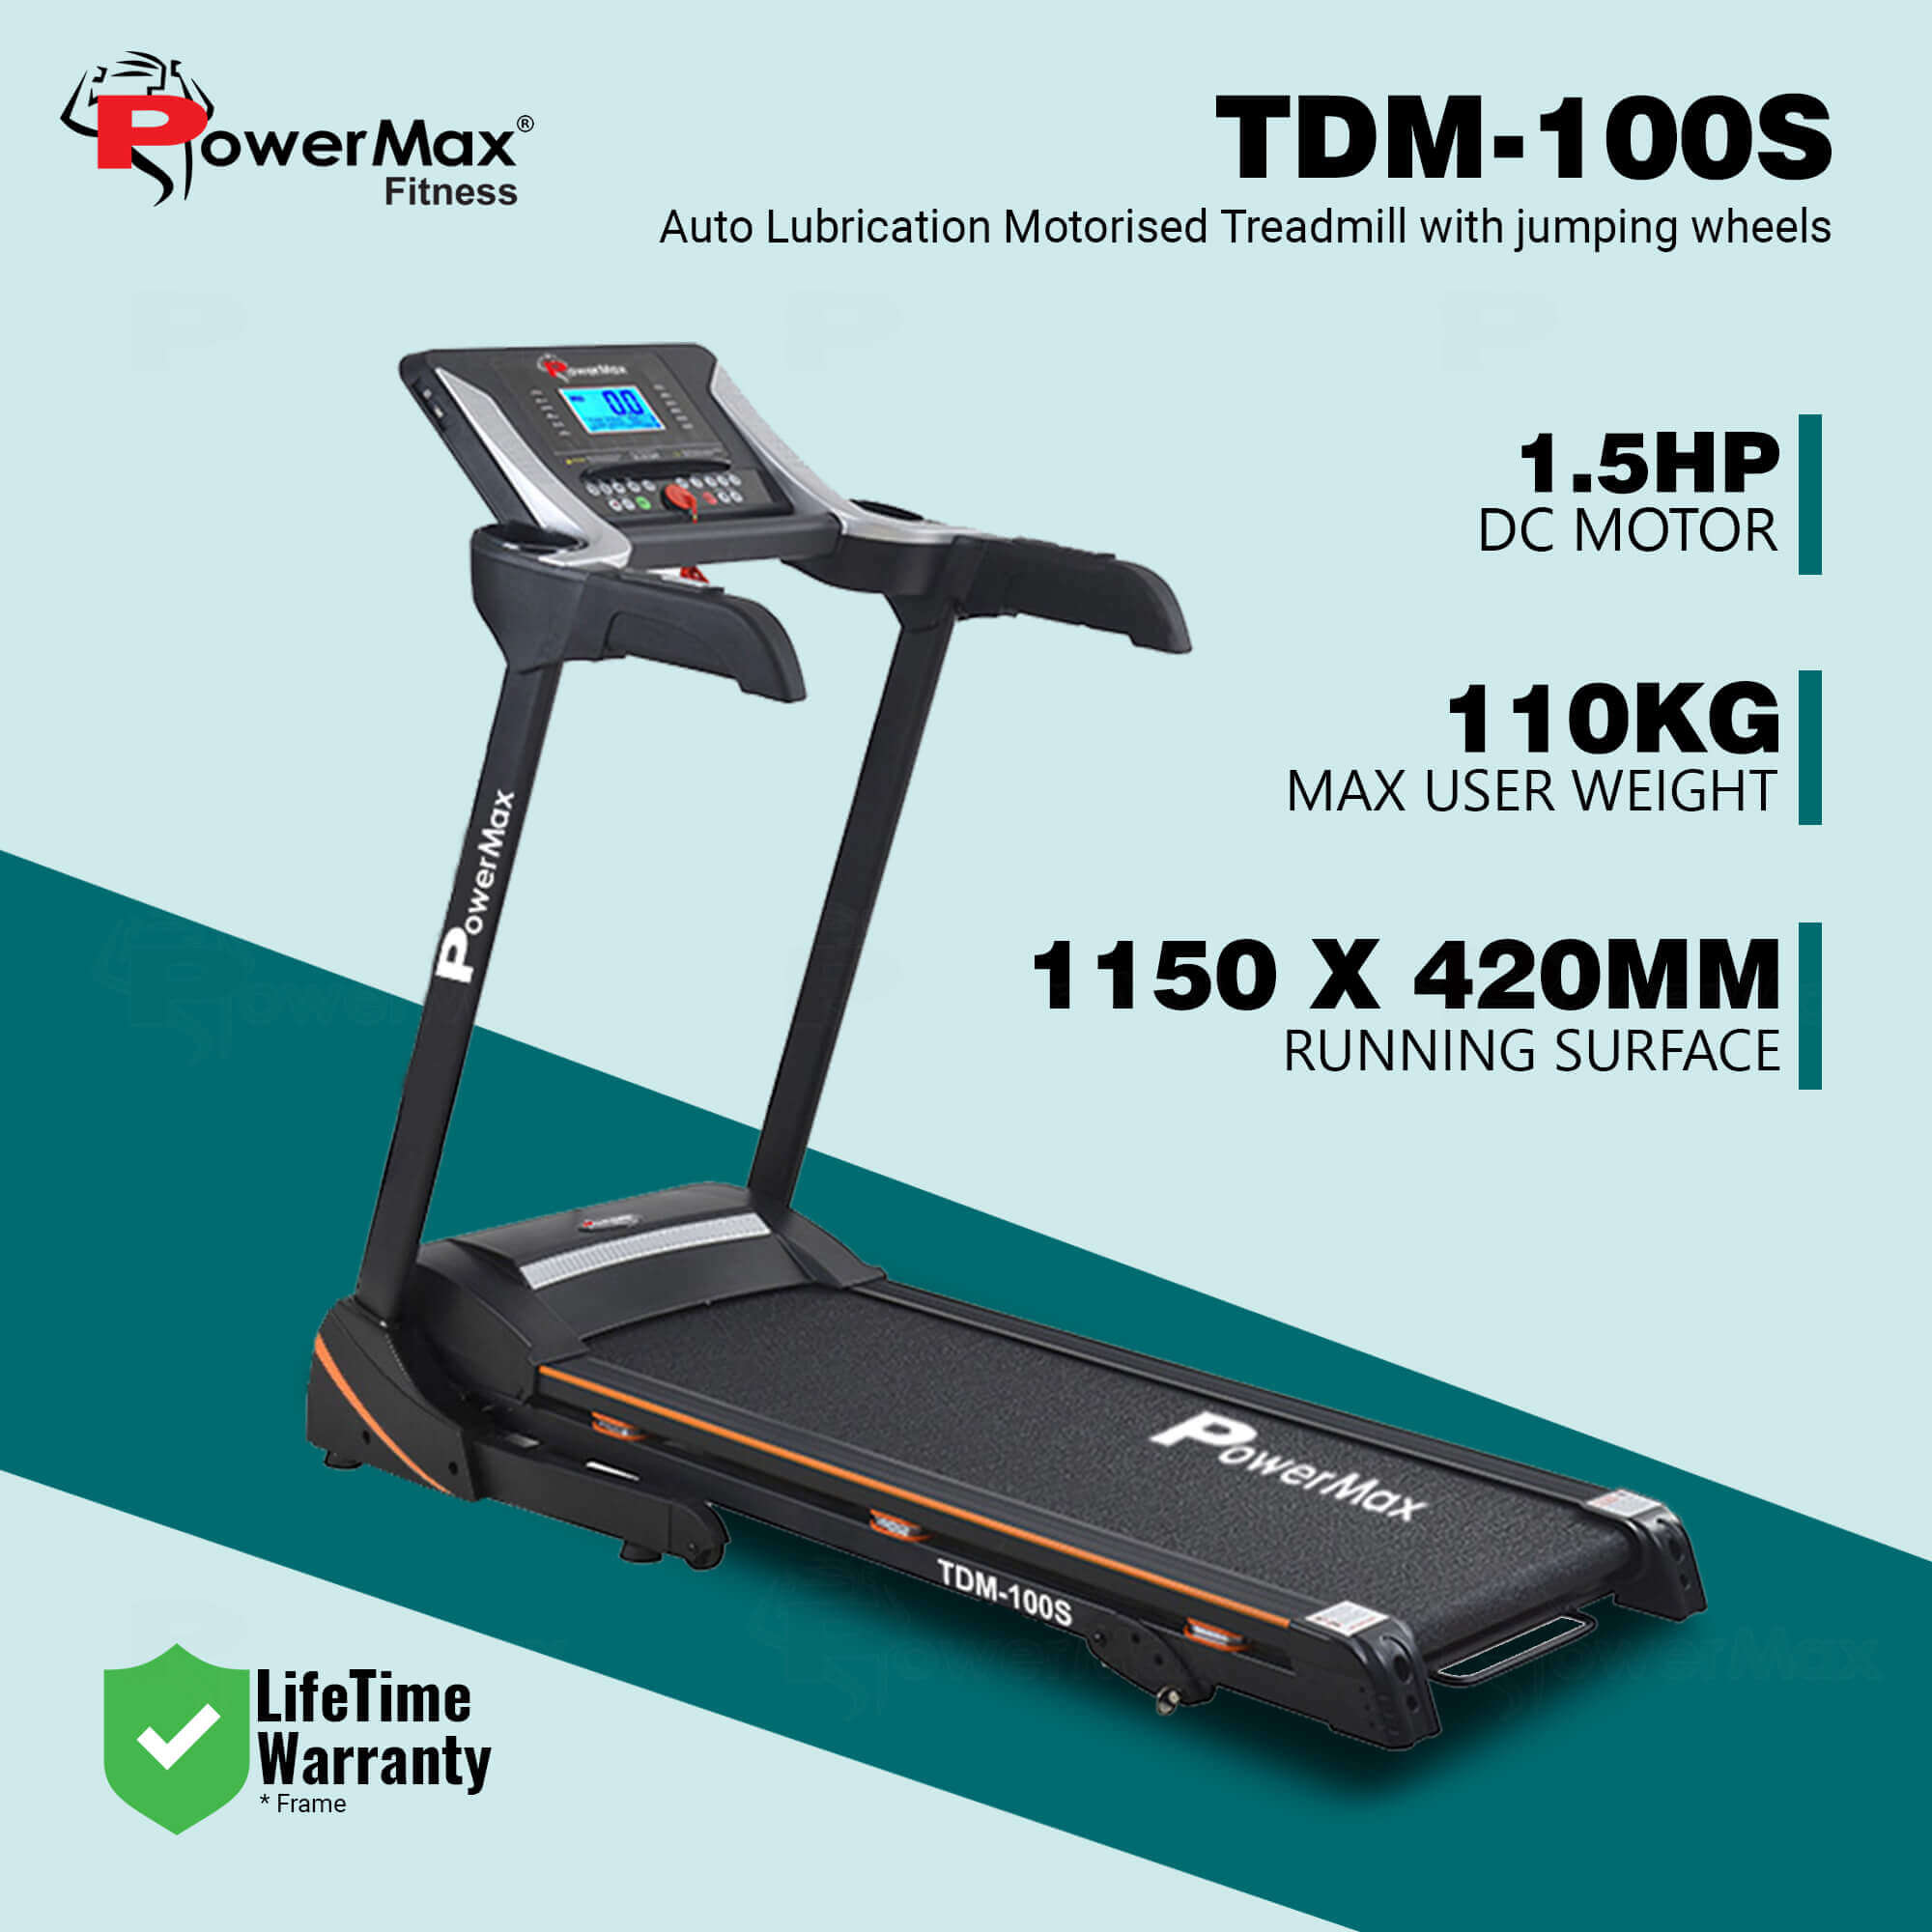 Powermax Fitness TDM-100S-V2 (1.5HP) Motorized Treadmill with Jumping Wheel & Auto Lubrication